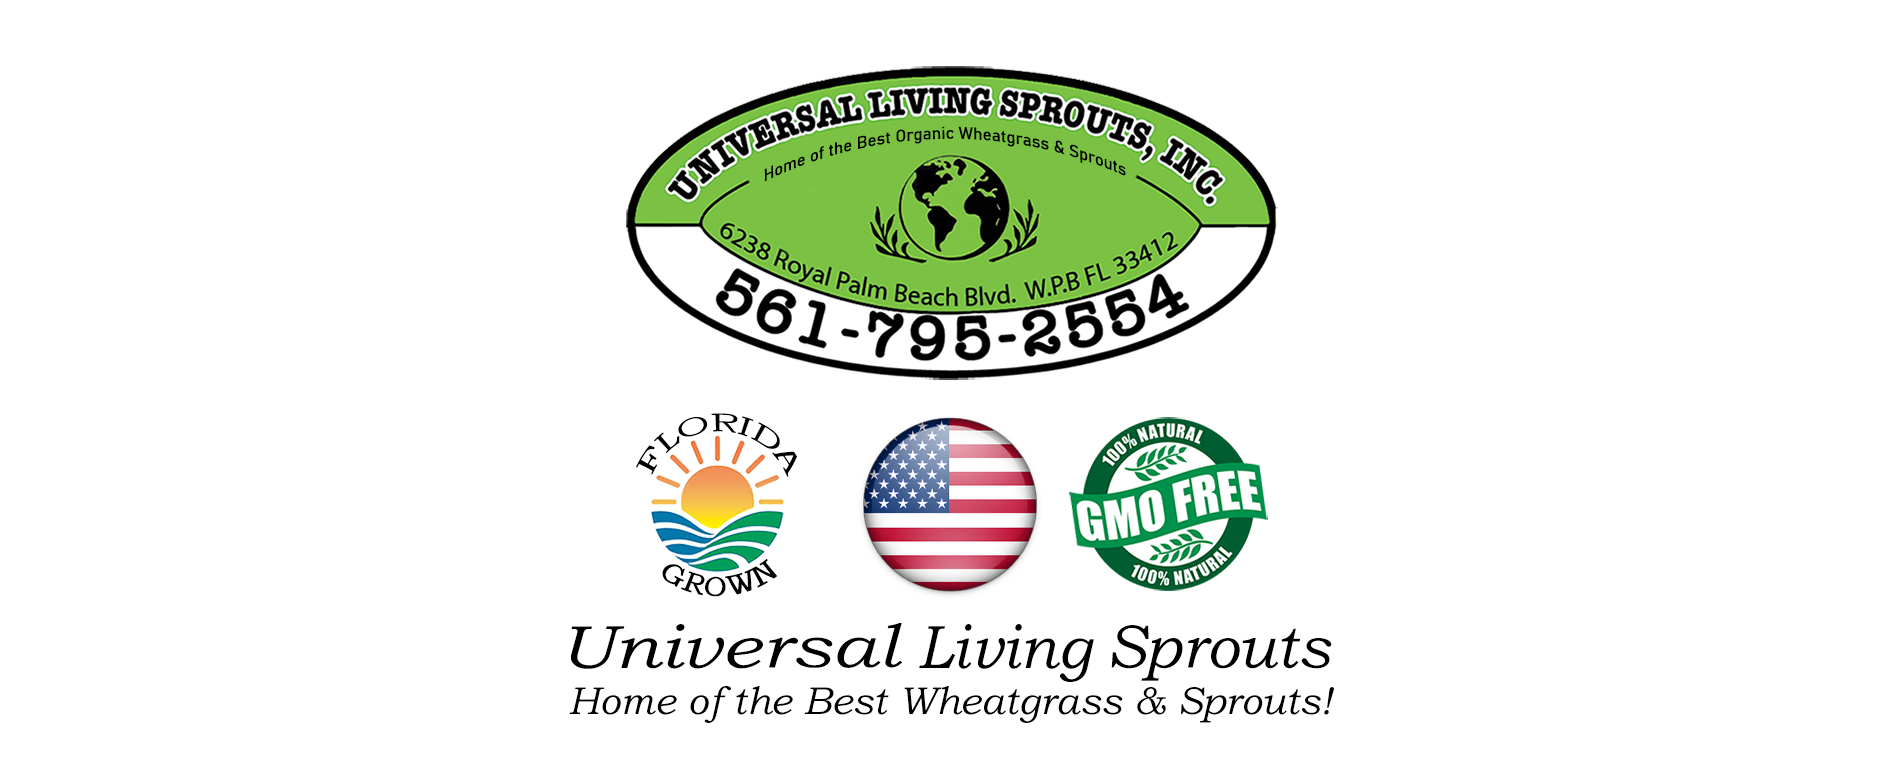 Universal Living Sprouts Home Page Banner